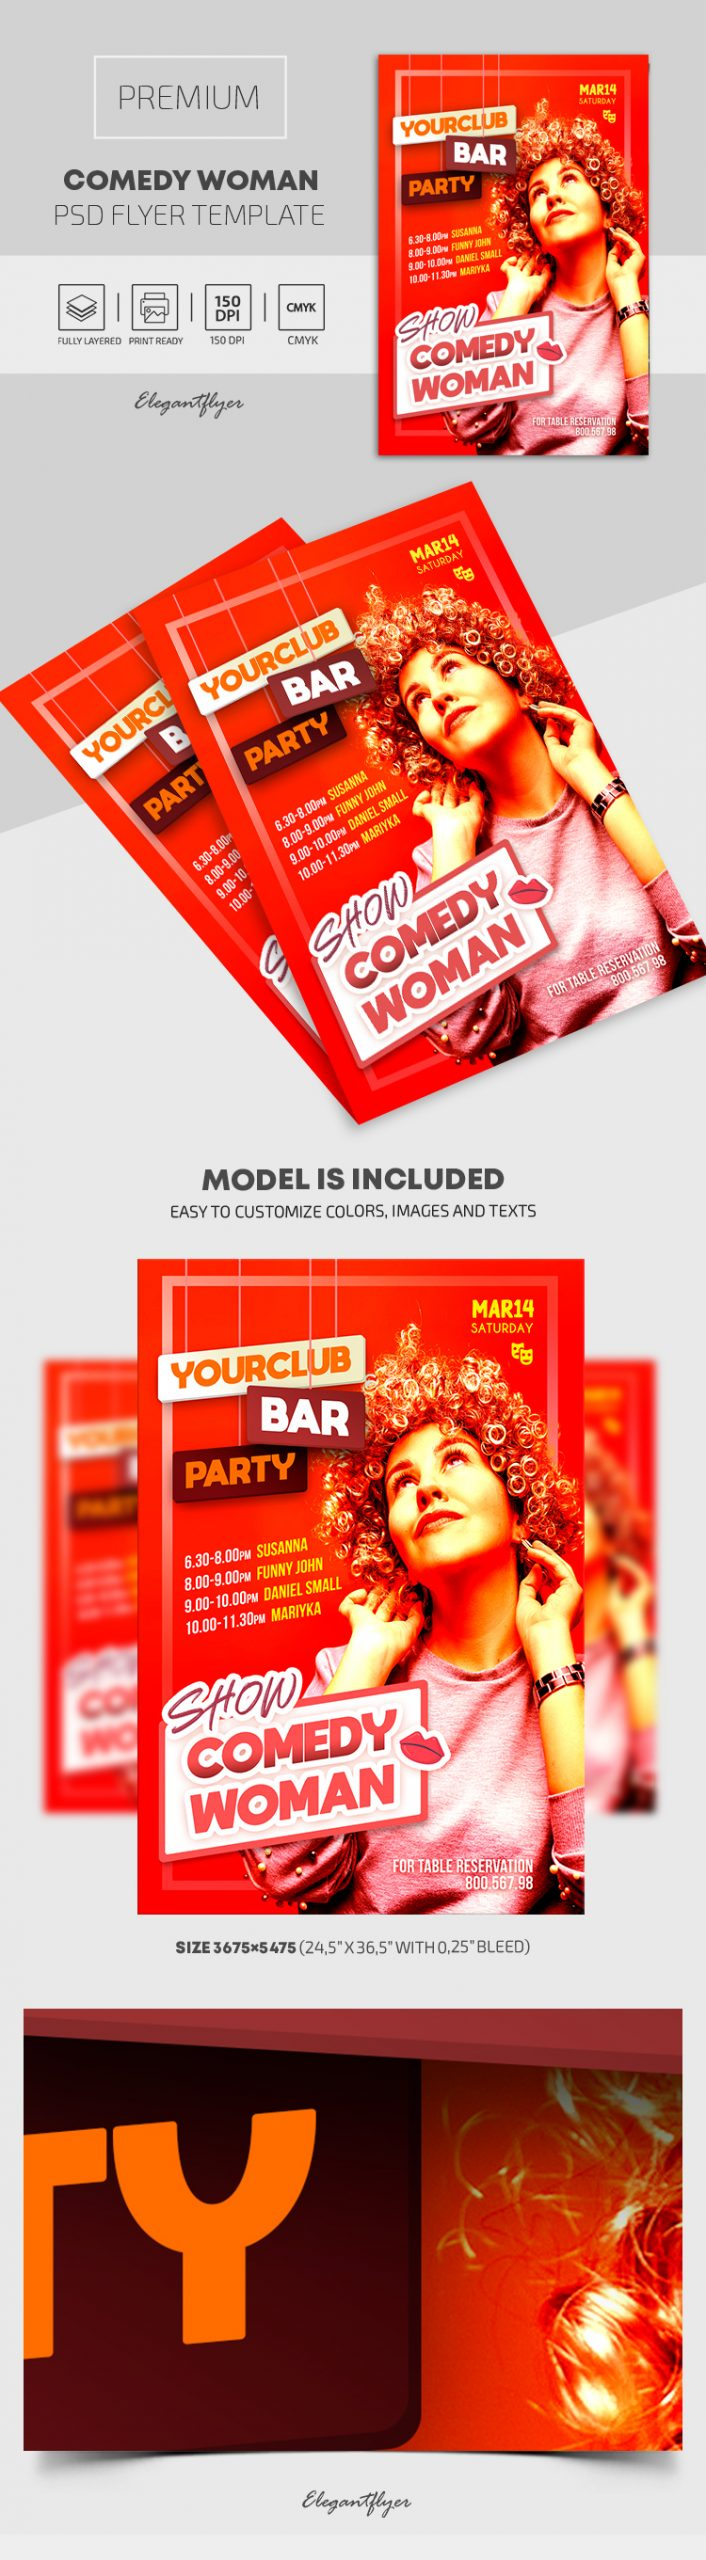 Comedy Woman – Premium PSD Poster Template